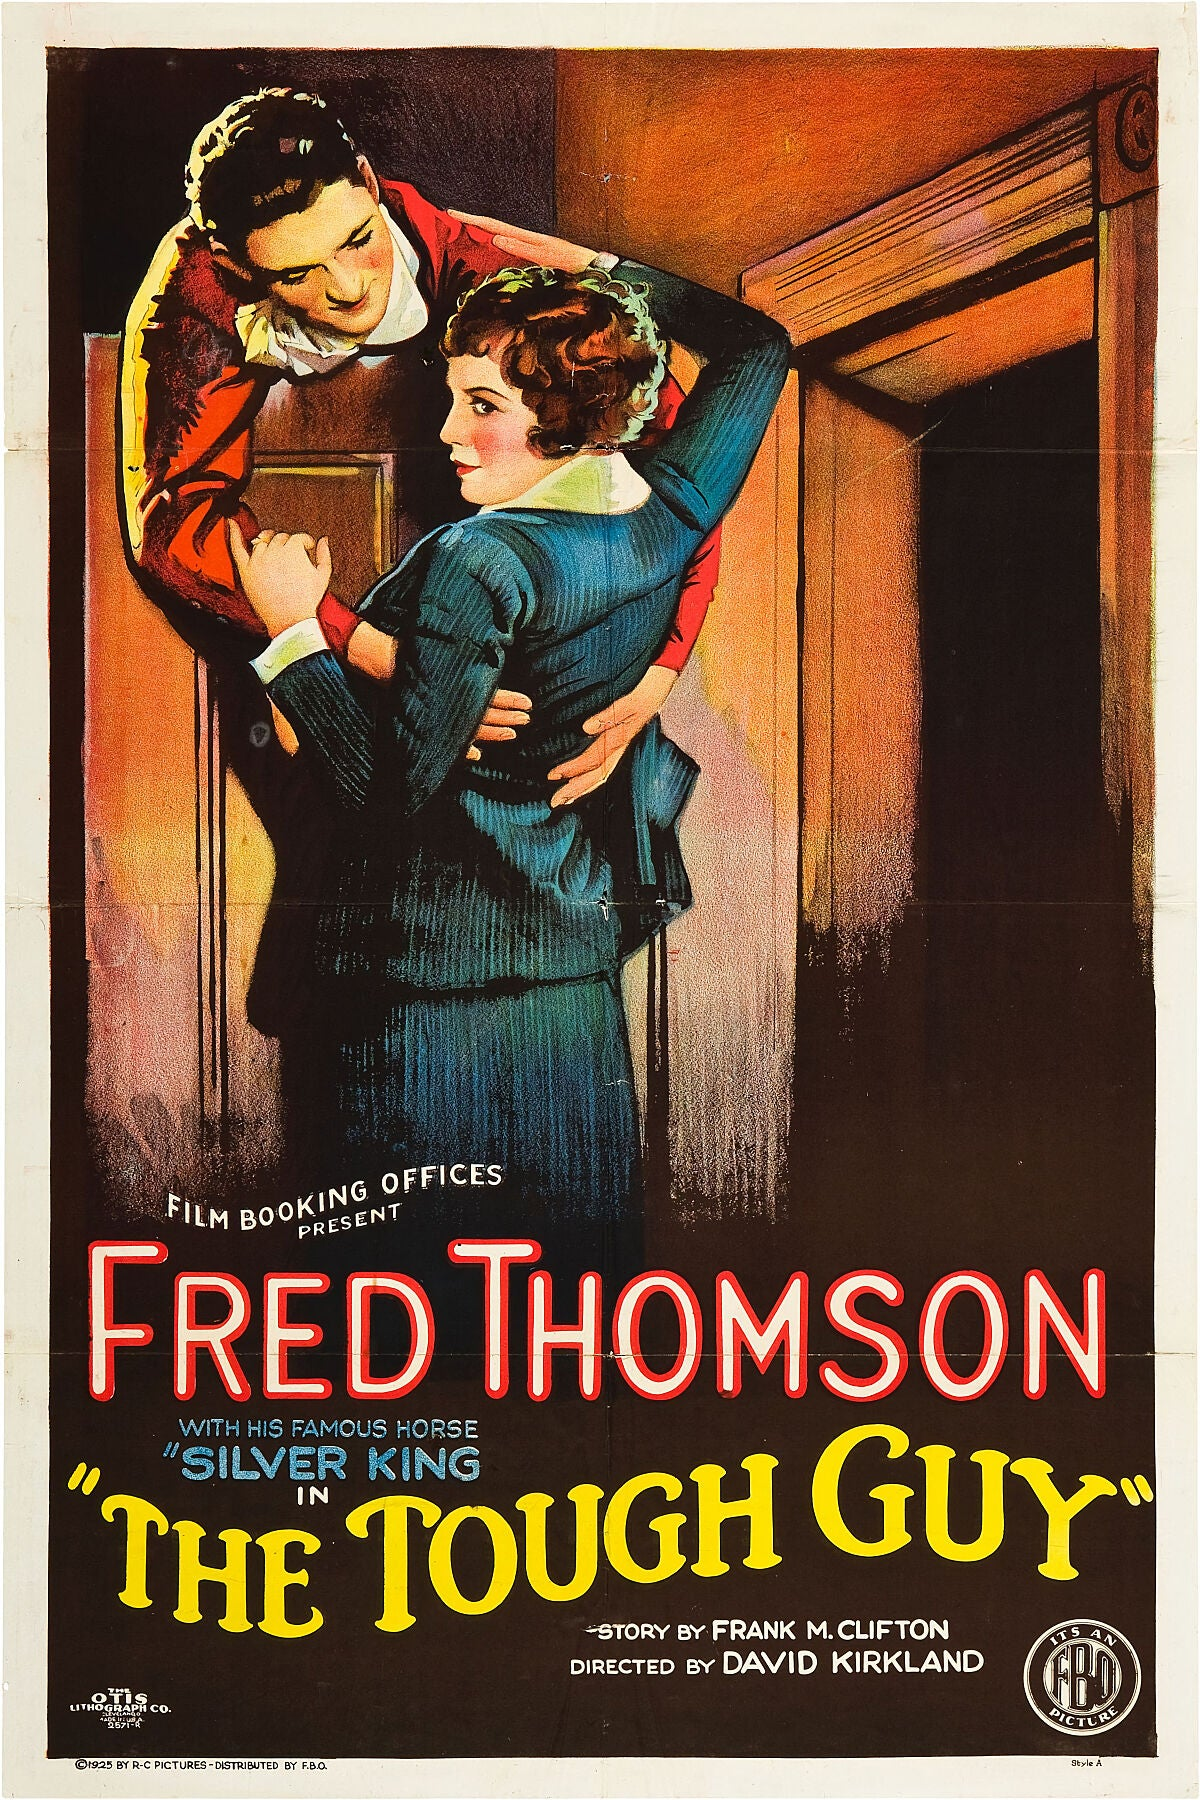 Print of a poster for The Tough Guy movie, 1925.